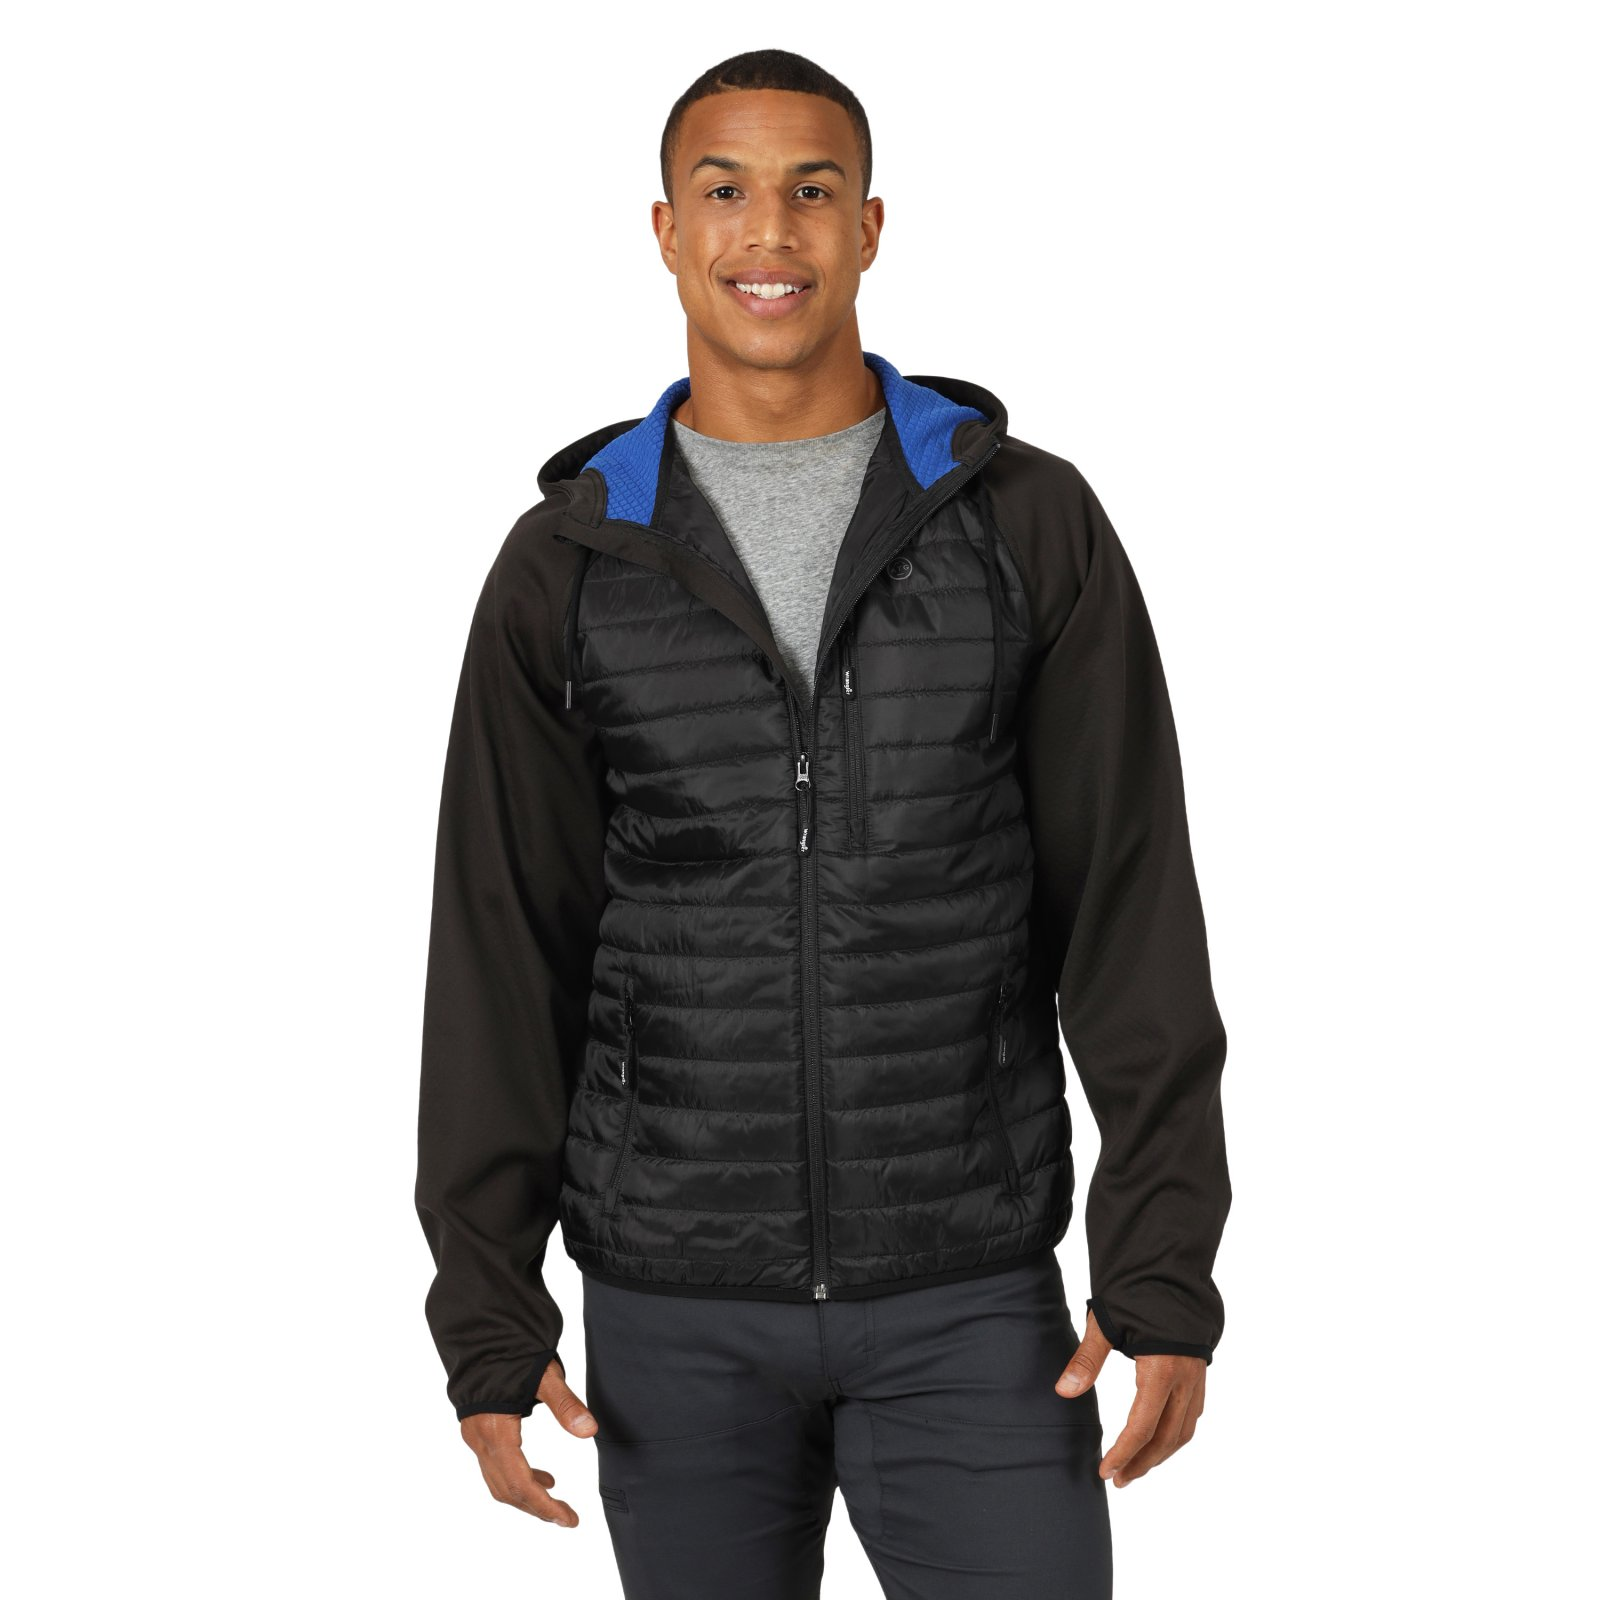 Outdoor Jacket Outrider Jacket from Wrangler